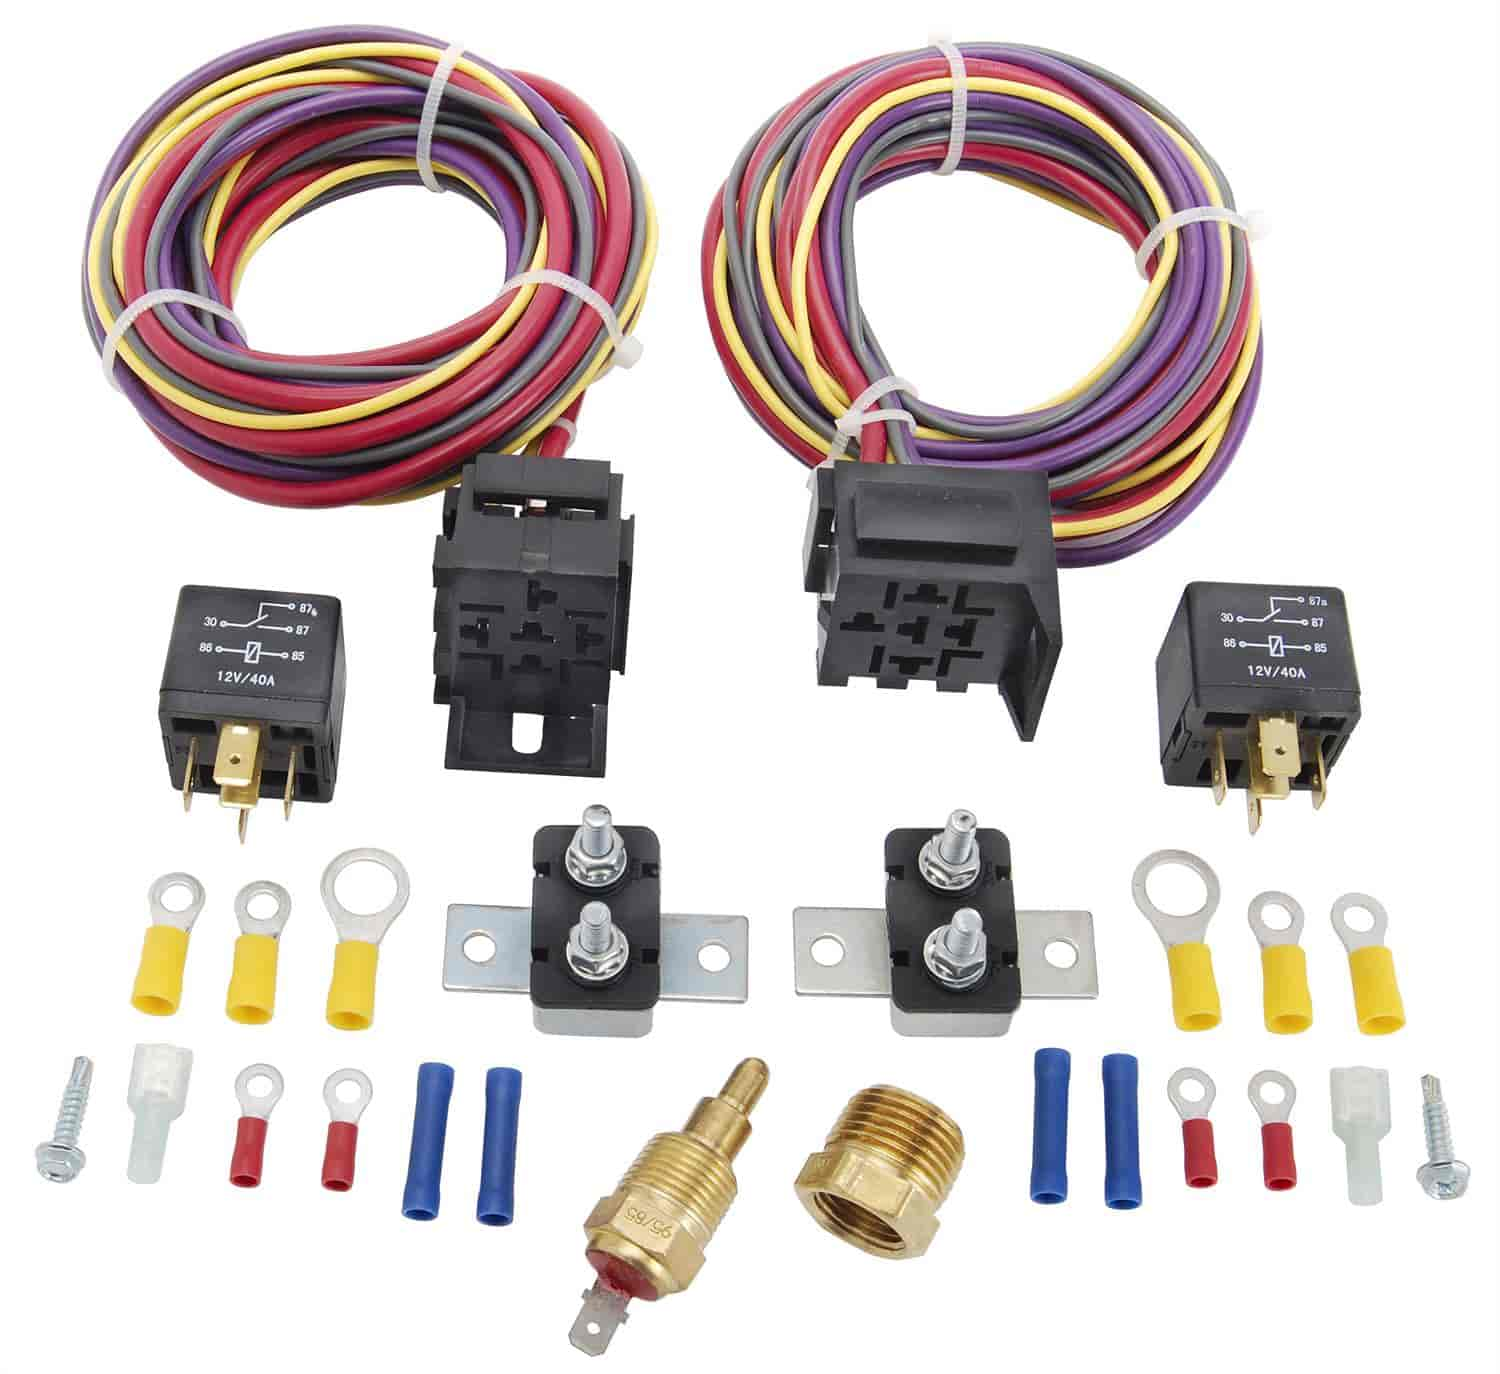 555 10571 jegs performance products 10571 dual fan wiring harness & relay VW Wiring Harness Kits at sewacar.co